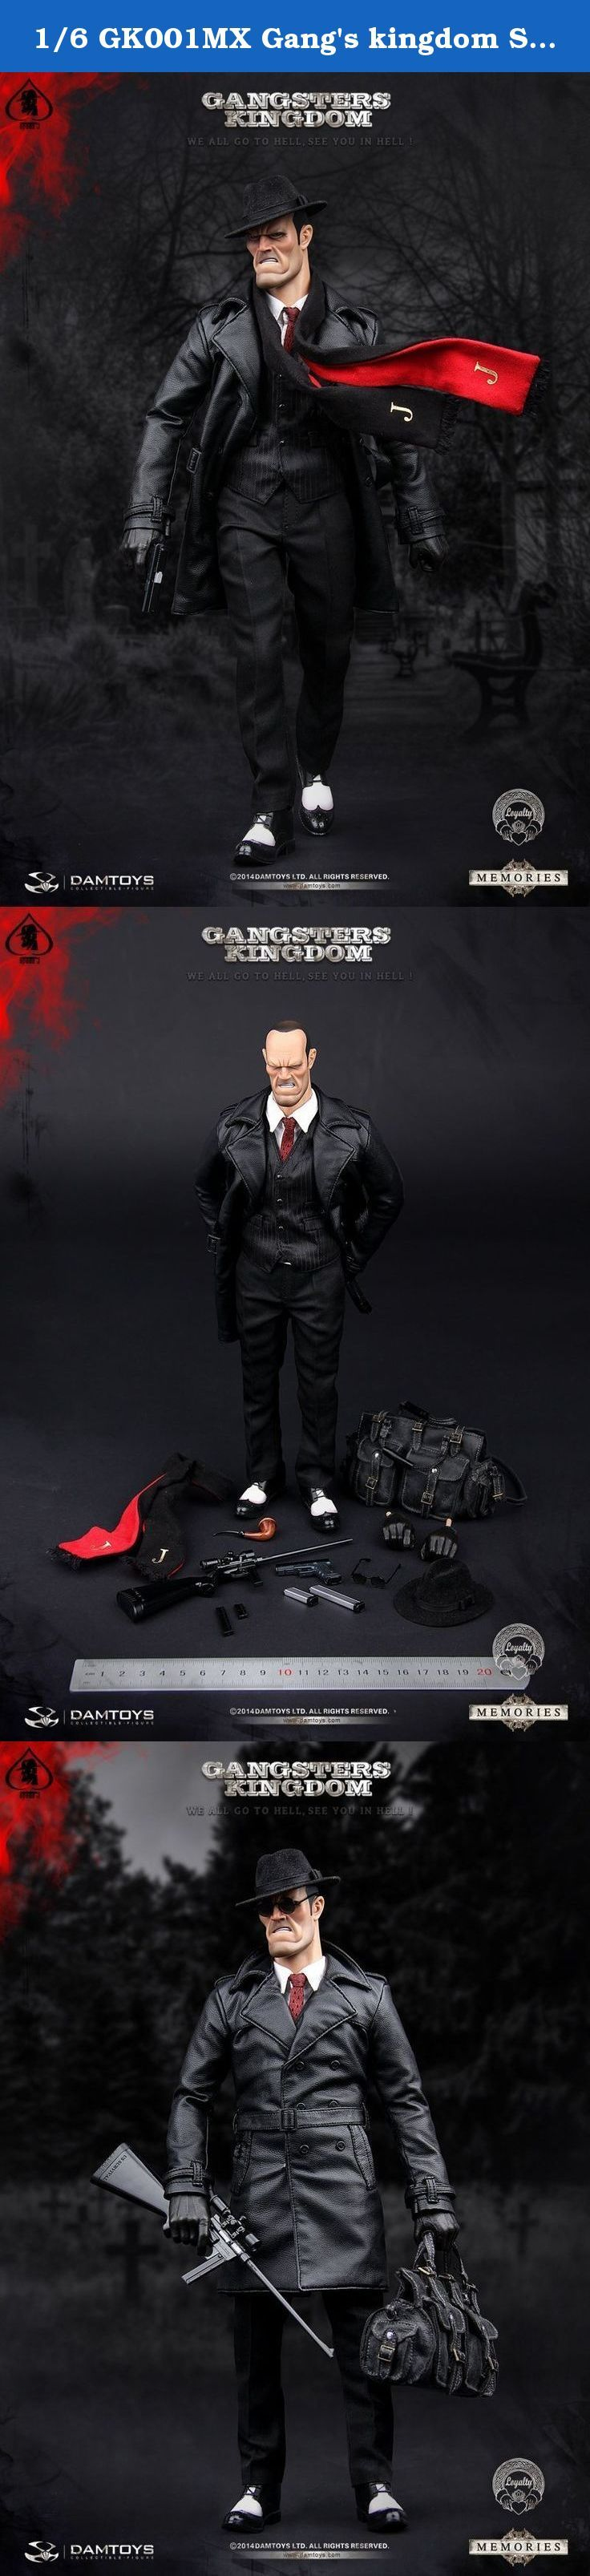 1/6 GK001MX Gang's kingdom Spade J Memories Ver.New. Features: 1.Headsculp 2.Action bady 3.Black hat 4.White shirt 5.A red tie 6.Black vest 7.Black leather trench coat 8.Black trousers 9.Black socks 10.Black and white shoes(1) PAIR 11.Glove Palm(1) PAIR 12.AR-7 Explorer 13.AR-7 8round mag 14.AR-7 15round mag 15.G17 pistol 16.G17 17round mag 17.G17 19round mag 18.G17 31round mag 19.Black round sunglasses 20.pipe 21.long scarf 22.Large black leather bag.